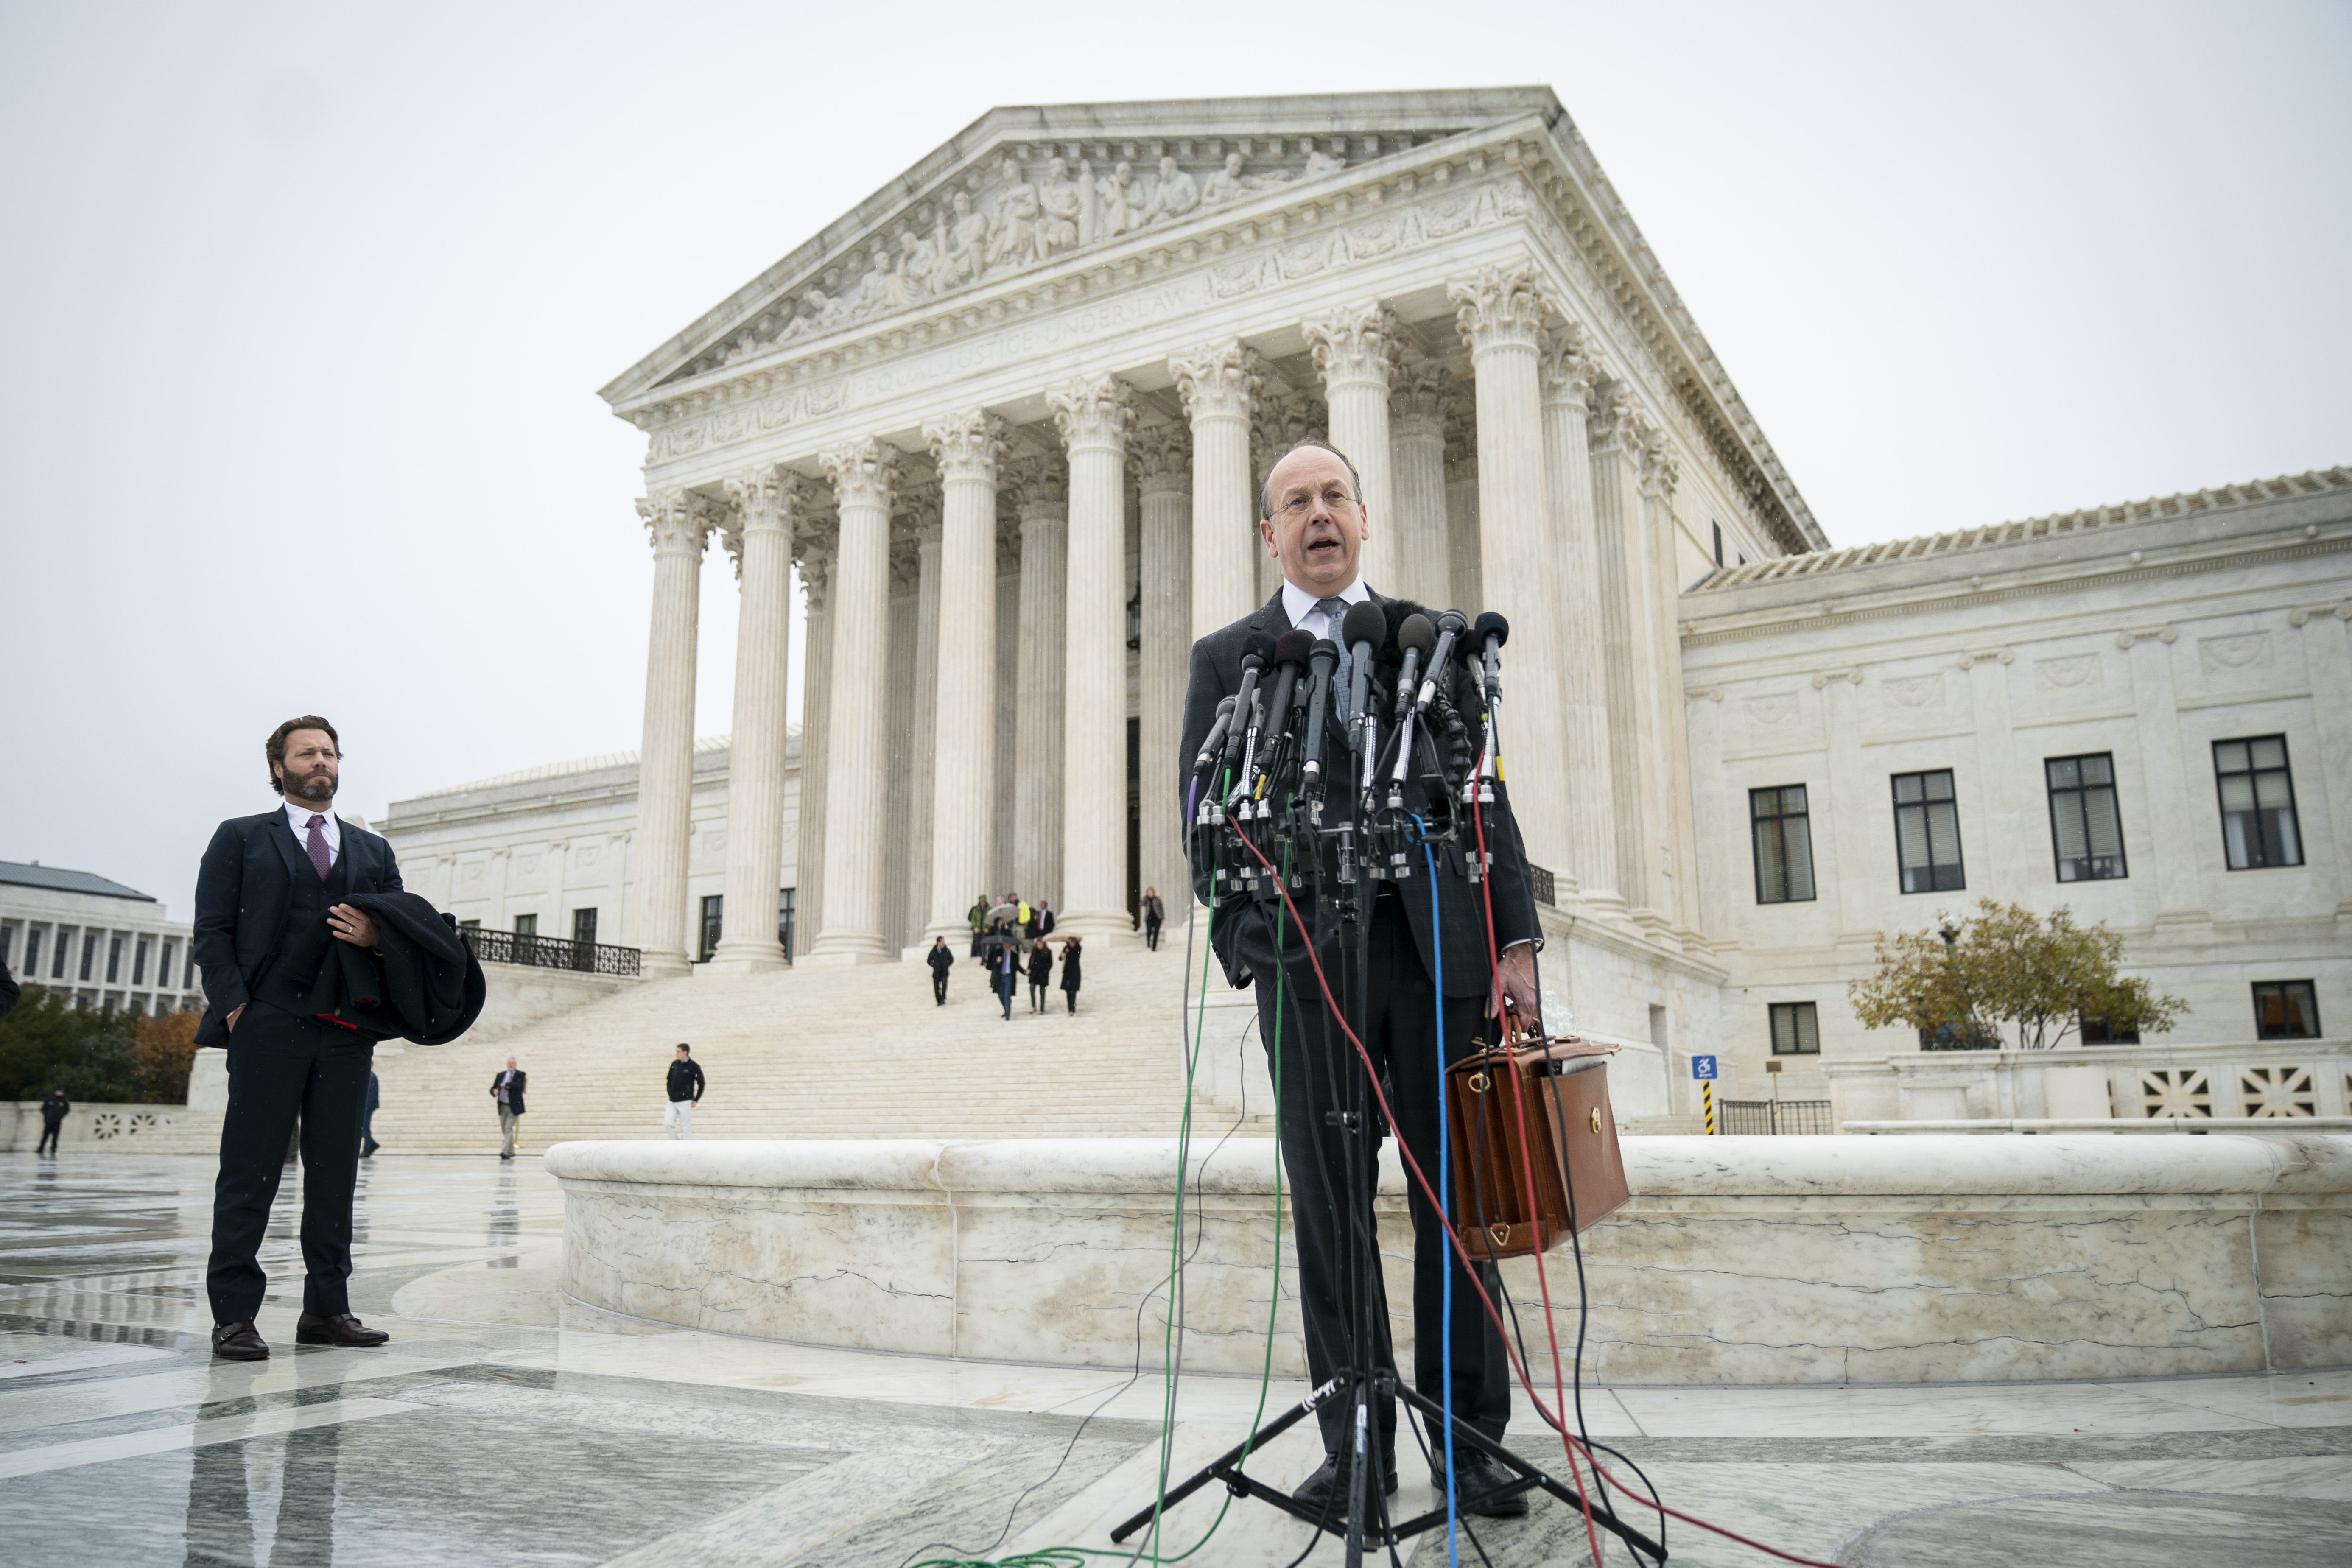 Paul Clement, a lawyer and former U.S. Solicitor General, speaks to the press outside the Supreme Court on December 2, 2019. (Drew Angerer/Getty Images)